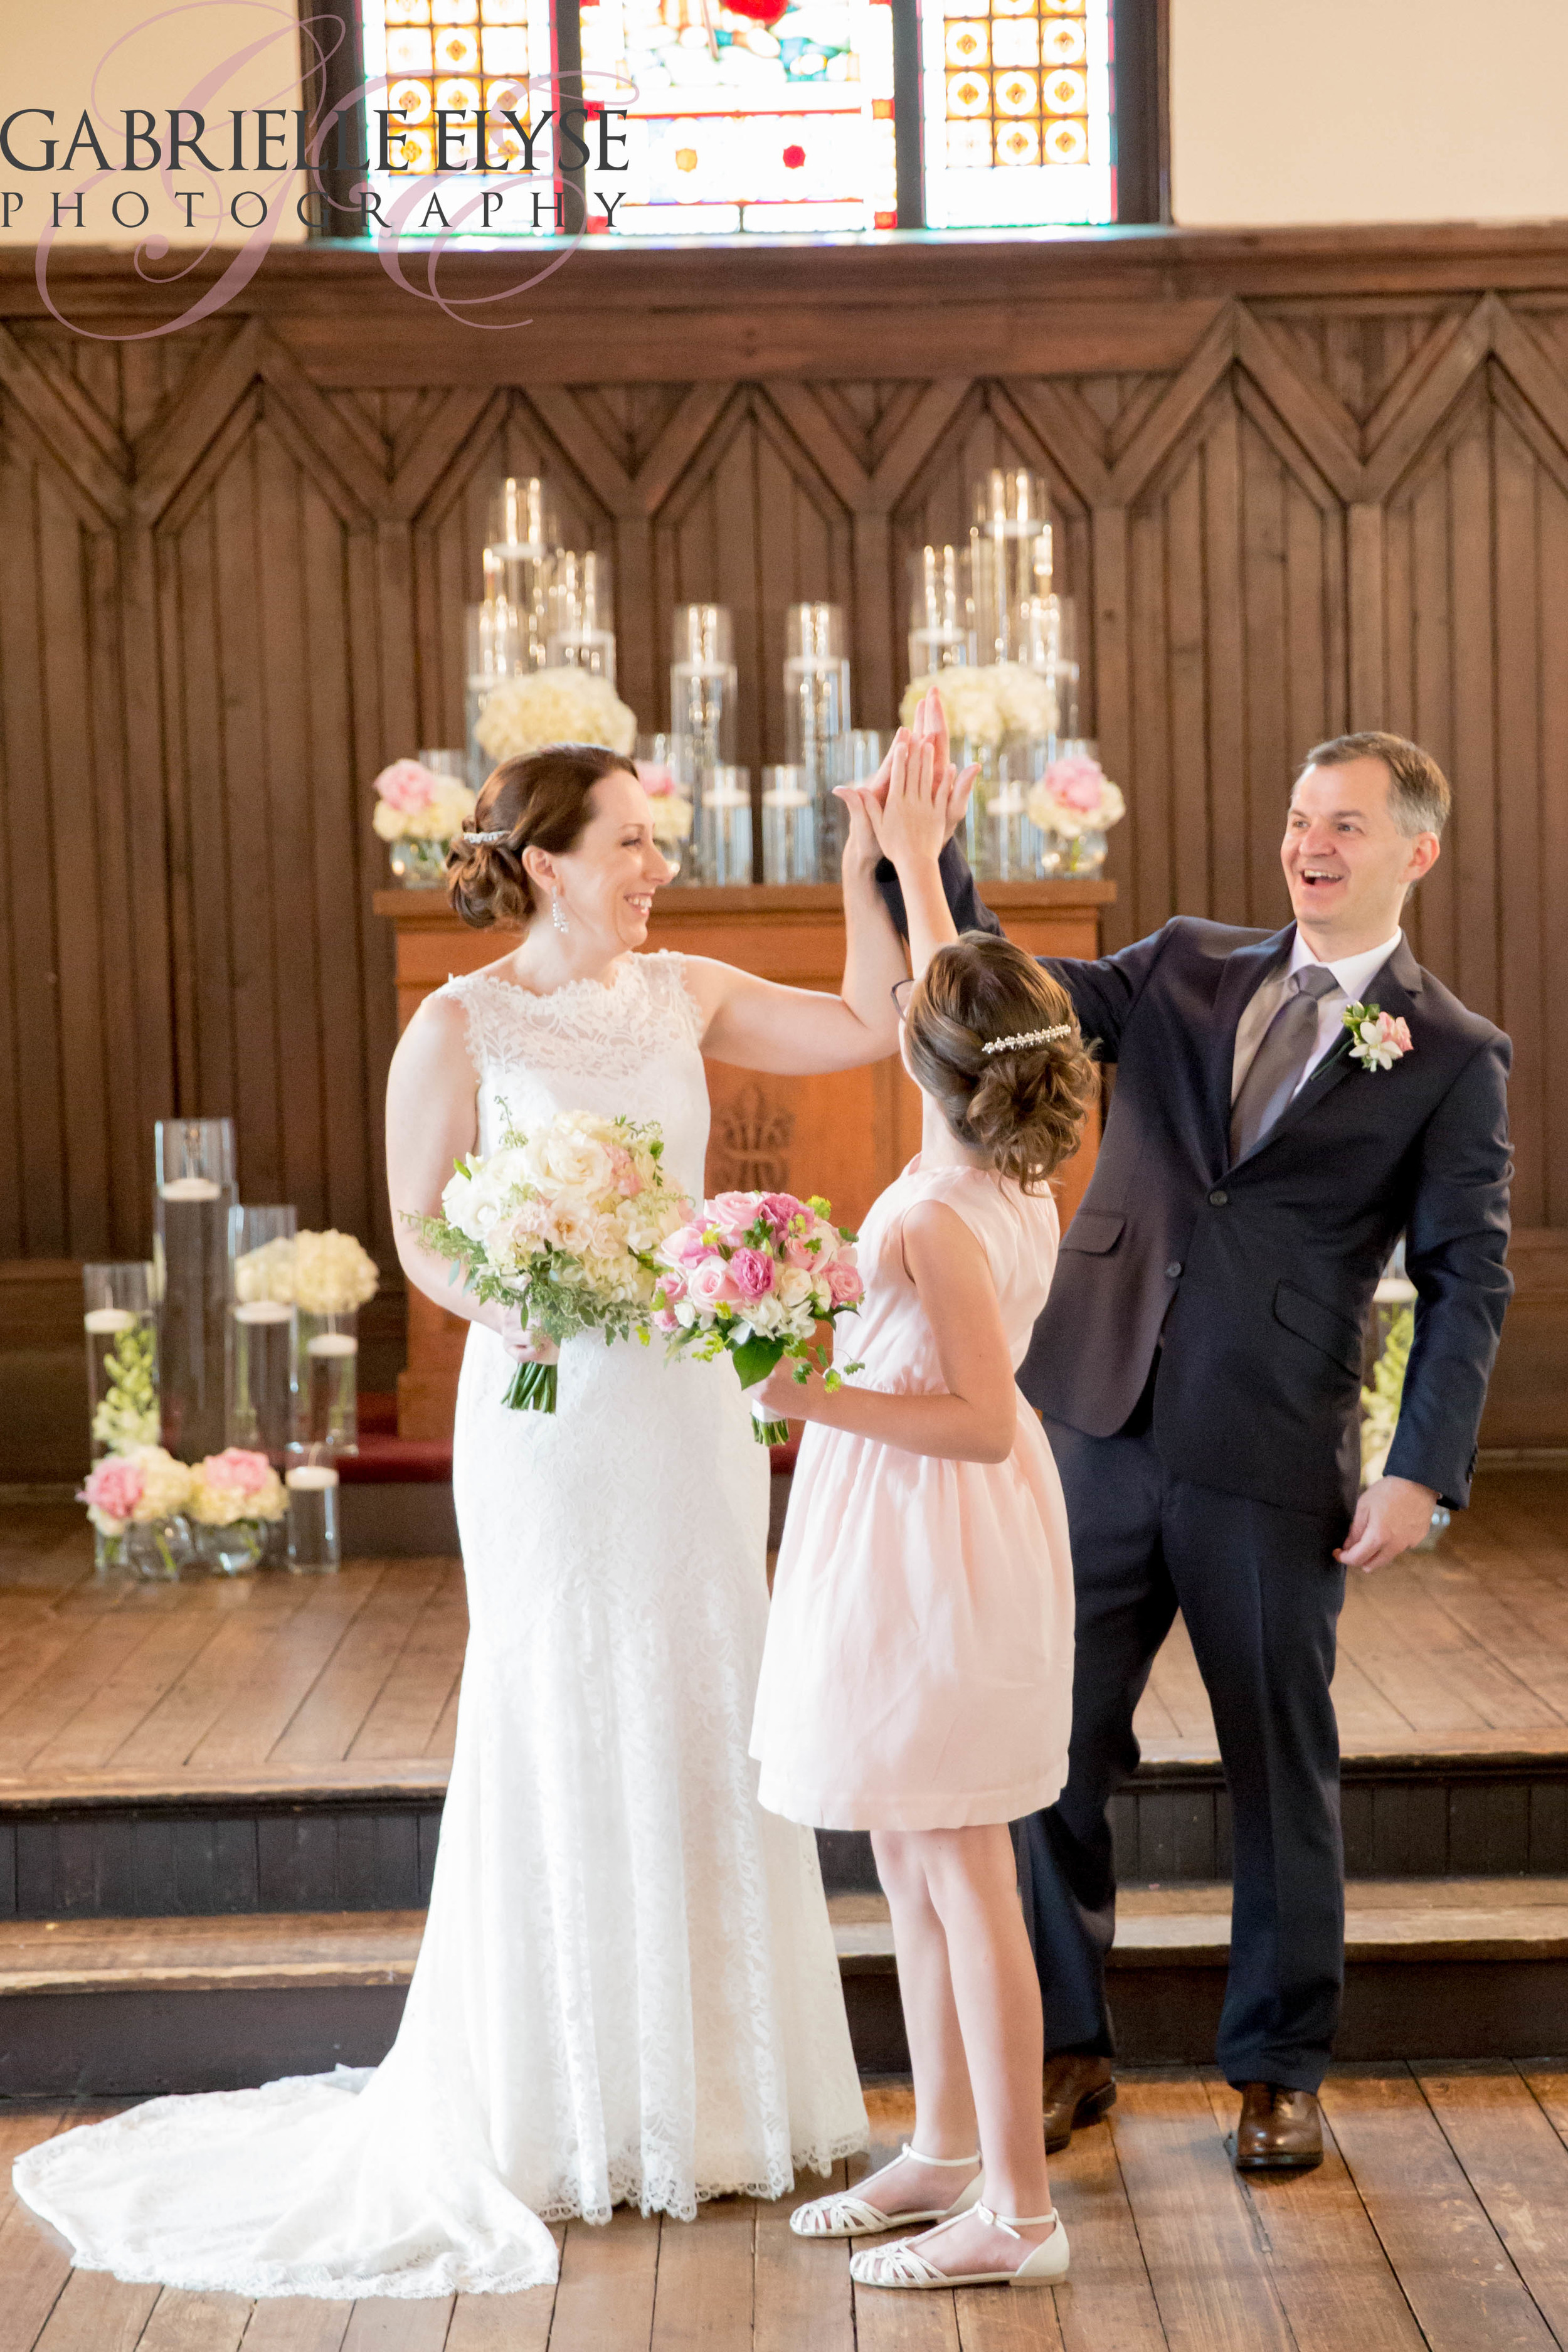 Love this family of three's post - ceremony High-Five! Perfect!